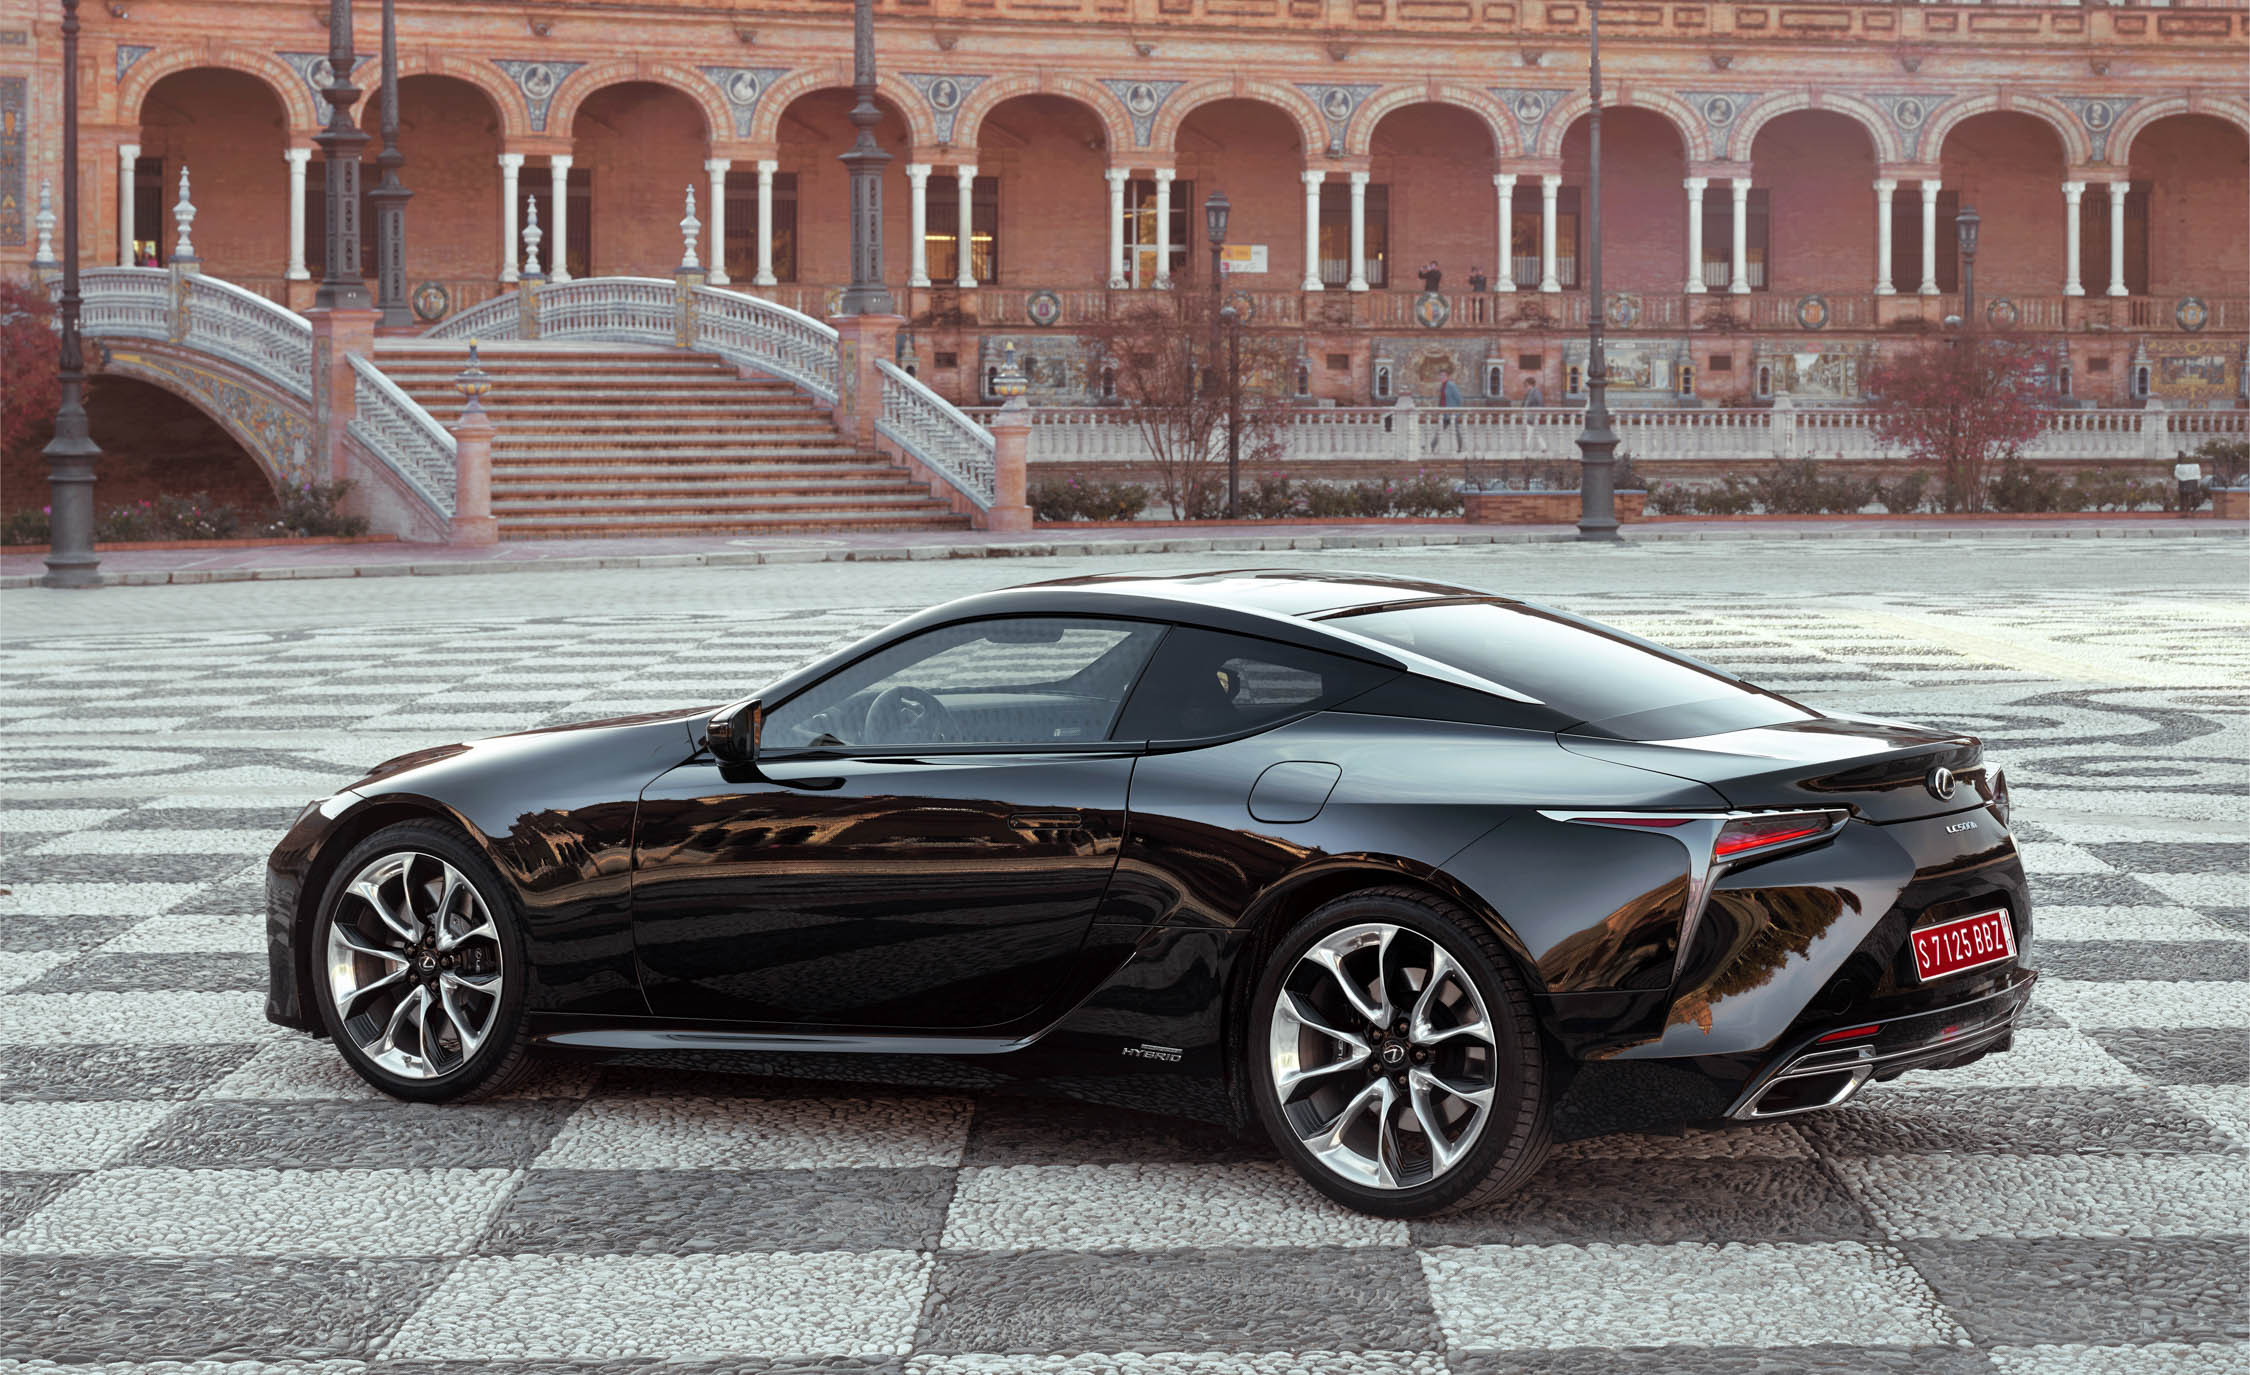 2018 Lexus Lc 500h Black Exterior Side And Rear (Photo 46 of 84)